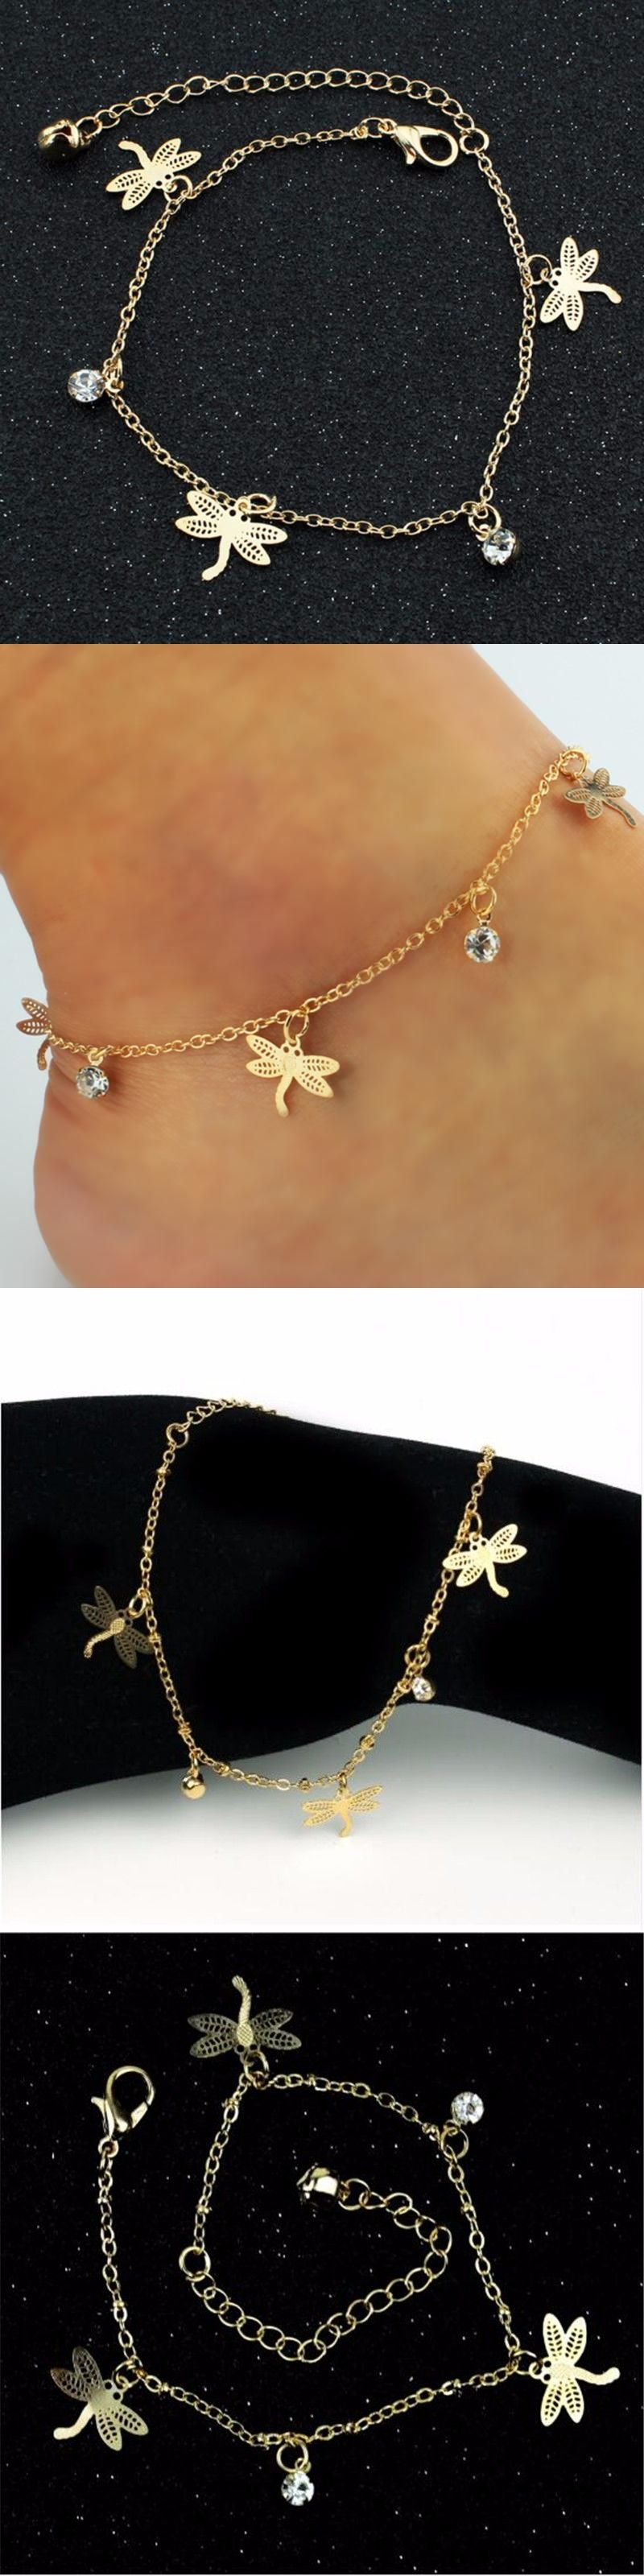 ankle girls designer color anklets accessories in turkish tow foot women feet shoes item sexy jewelry pendant anklet decoration bead bracelet bracelets from